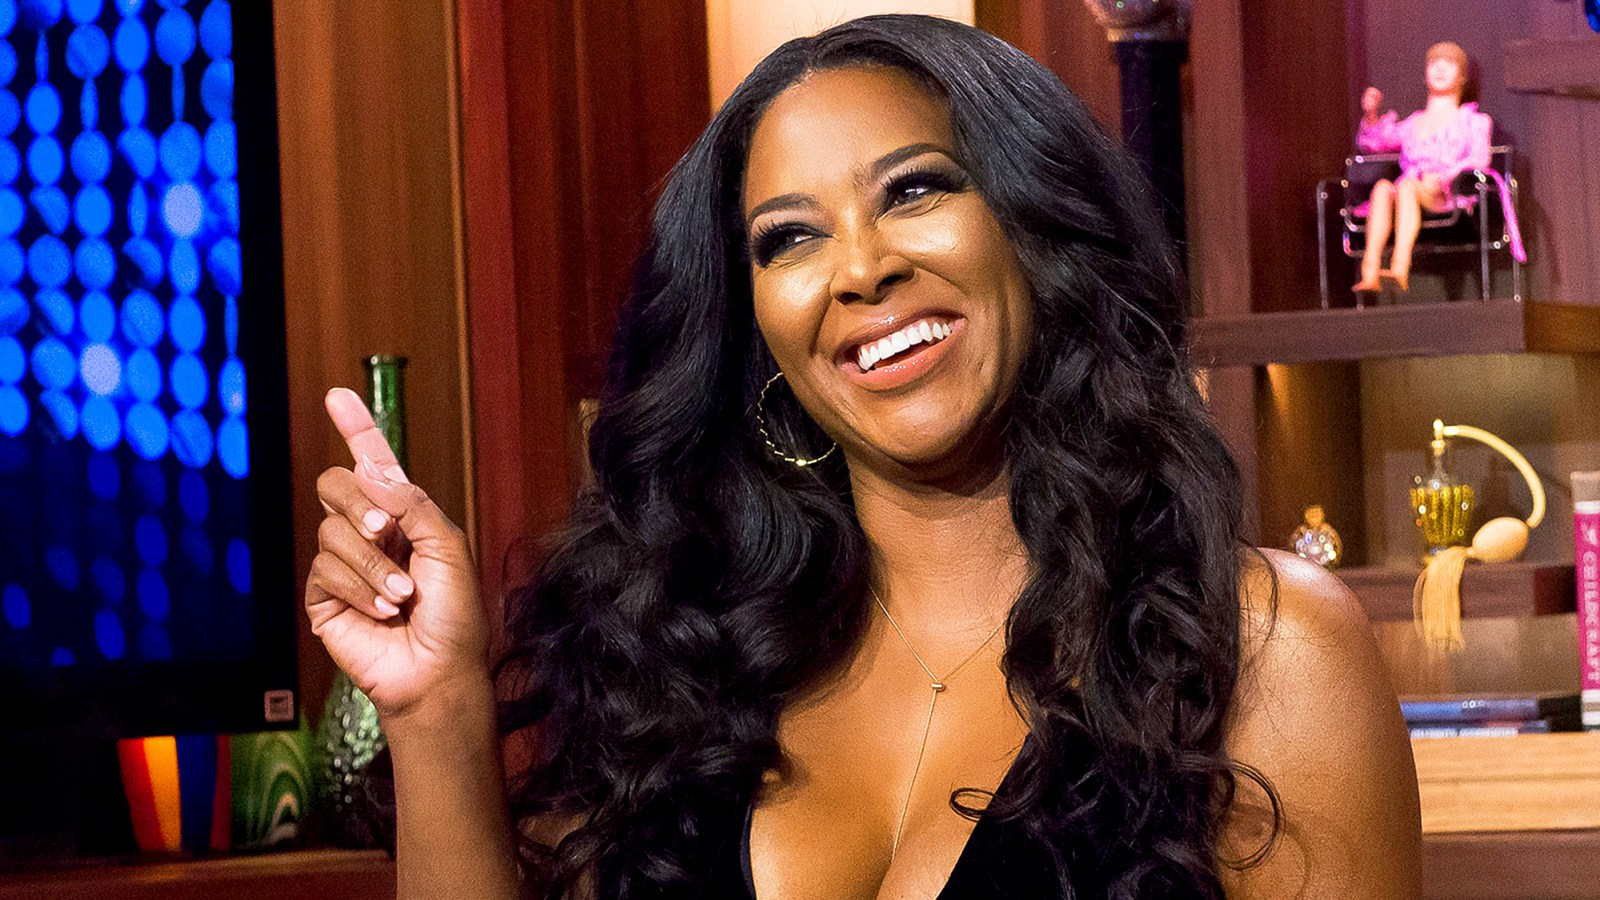 Kenya Moore Tells Fans Taht Sky's The Limit - See her Gorgeous Photo